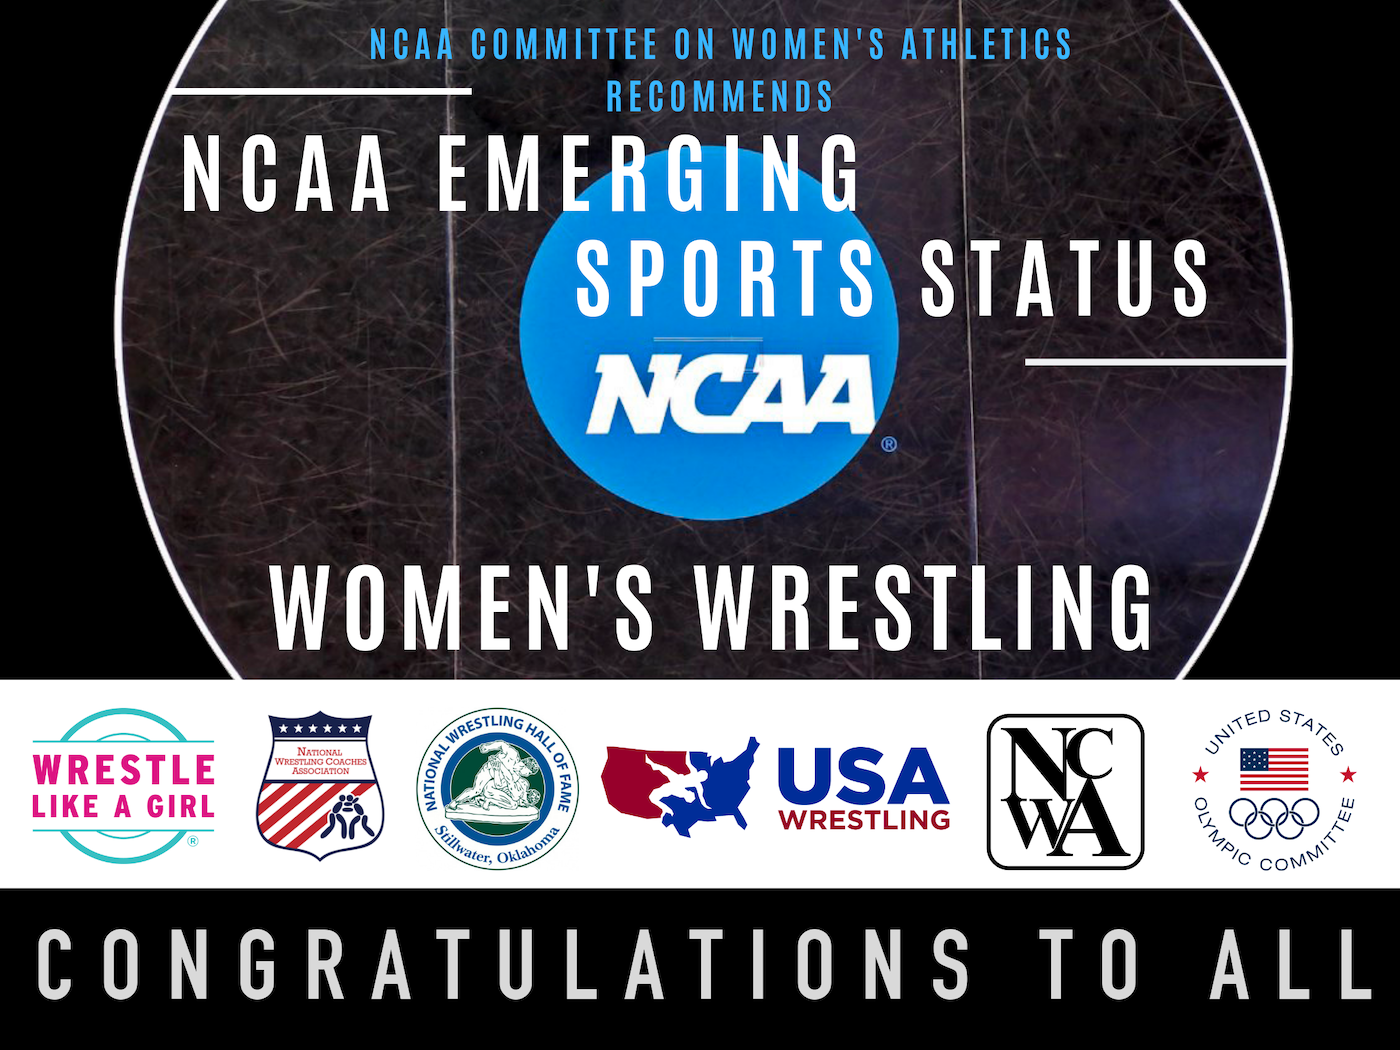 "Wrestling community applauds NCAA Committee for Women's Athletics decision recommending women's wrestling for Emerging Sports Status - For immediate release, June 2, 2019 10:30 a.m. ETWrestling community applauds NCAA Committee for Women's Athletics decision recommending women's wrestling for Emerging Sports StatusThe U.S. wrestling community, including its leading organizations, is celebrating today's announcement from the National Collegiate Athletic Association (NCAA) concerning women's wrestling.The NCAA's Committee on Women's Athletics (CWA) has ""recommended that all three divisions of the NCAA governance structure add women's wrestling as an NCAA emerging sport, effective August 1, 2020.""Each NCAA division (Division I, Division II and Division III) will address this recommendation separately, and will determine independently if women's wrestling is added to the division's Emerging Sports list.Beginning in August 2017, a coalition of wrestling organizations, including Wrestle Like A Girl, the National Wrestling Coaches Association, USA Wrestling, the National Wrestling Hall of Fame, the U.S. Olympic Committee, and expanding to include the National Collegiate Wrestling Association, worked together to submit an application to the NCAA CWA for women's wrestling to attain Emerging Sport Status. All of the national leaders in wrestling have supported this effort and supplied information for the bid that was sent to the NCAA CWA, in compliance with all of the requirements of Emerging Sport Status.The wrestling community applauds and thanks the NCAA's Committee for Women's Athletics for its governance and vision in reviewing the women's wrestling application and recommending wrestling for NCAA Emerging Sport Status.The wrestling community celebrates the role Title IX has played in developing women's wrestling opportunities, and pledges to continue to build the sport with that spirit of inclusion until it achieves official Championship status within the NCAA, and thereafter.""This is a great day for wrestling. The recommendation from the NCAA Committee on Women's Athletics could impact the lives of thousands of women student-athlete wrestlers for generations to come. We thank the efforts of all the wrestling organizations who have led the charge seeking Emerging Sport Status. USA Wrestling is fully committed to supporting wrestling for women and girls at all levels and is excited about the future. We are encouraged by today's decision, and fully expect it to help accelerate the growth of women's wrestling,"" said Rich Bender, Executive Director of USA Wrestling.""The NWCA is eternally grateful for all of the collaborative efforts between the wrestling community and the NCAA to make this day possible. This is a great day for countless young women across the nation who are one step closer to having access to an NCAA championship for women's wrestling,"" said Mike Moyer, Executive Director of the National Wrestling Coaches Association.""Wrestle Like A Girl and its national partners share in the glory of the women's wrestling recommendation to the NCAA Div. I, II, and III Committees for Emerging Sports Status. Collaborating with state high school athletic associations and the Olympic movement, and powered by Title IX, thousands of women will now have access to the NCAA's annual pool of $2.9 billion in athletic scholarships providing powerful sports experiences and educational opportunities. Wrestling, as a one-on-one contact sport, uniquely teaches women agency over space, voice and body. We are proud to be a leading voice for equality in the sport of wrestling, and at-large,"" said Sally Roberts, two-time World Bronze medalist, combat veteran and founder of Wrestle Like A Girl.""""The National Wrestling Hall of Fame fully supports Emerging Sports status for women's wrestling and takes great pride in sharing the message that wrestling does not discriminate based on gender, size, ethnicity or physical limitations and it is truly a 'Sport For All' and 'Any BODY Can Wrestle',"" said Lee Roy Smith, Executive Director of the National Wrestling Hall of Fame. ""We look forward to welcoming many more females into the Hall of Fame as women's wrestling continues to grow as a result of this decision.""""The NCWA is proud to have been a small part of this collaborative effort to provide women the inclusive opportunity to compete at the highest levels in college sport through the NCAA. With this outstanding victory for wrestling we remain committed in our efforts to the expansion of wrestling opportunities to student athletes at all levels,"" said Jim Giunta, Executive Director of the National Collegiate Wrestling Association.Currently, there are 23 NCAA programs (varsity or club) that have met the qualifications to be included in the NCAA ESS bid, with a minimum roster size of six, and a competition schedule with at least five contests. An additional 13 NCAA programs are scheduled to add women's wrestling for the upcoming 2020 or 2021 competition season. In addition, dozens of women's wrestling clubs have been established on other NCAA-affiliated campuses and are working towards increasing their rosters and competition schedules.Current varsity or club programs that have met the minimum requirement of a roster size of 6, and 5-contest competition schedule include: Adrian College, Colorado Mesa University, Colorado State University, Dixie State University, Emmanuel College, Ferrum College, Gannon University, King University, Lakeland University, Liberty University, Lindenwood University, MacMurray College, McKendree University, Pacific Lutheran University, Pacific University, Presbyterian College, Simon Fraser University, Tiffin University, Schreiner University, University of Houston, Fresno State University, and University of Texas – Arlington, Texas A&M.NCAA programs that are adding women's wrestling for the upcoming seasons, as of May 30, 2019:1. Alderson Broaddus University 2019–2020 (Div. II)2. Augsburg University 2019-20 (Div. III)3. Davenport University 2020–2021 (Div. II)4. Delaware Valley University 2019–2020 (Div. III)5. East Stroudsburg University 2019–2010 (Div. II)6. Fontbonne University 2019-2020 (Div. III)7. Iowa Wesleyan University 2020-2021 (Div. III)8. Limestone College 2019–2020 (Div. II)9. Lock Haven University 2019-20 (Div. II)10. New Jersey City University 2020-21 (Div. III)11. North Central College 2019–2020 (Div. III)12. University of Wisconsin–Stevens Point 2019–2020 (Div. III)13. Westminster College 2019–2020 (Div. III)Overall, the number of women's college wrestling programs from all college sports associations combined (both existing and announced) is over 83 and growing.Girls and women's wrestling is one of the fastest growing sports in the United States. There are currently 16 state high school athletic associations that have created or approved official girls state high school wrestling championships, with many other states in-process. With inclusive wrestling opportunities, and girls and women being afforded the opportunity to wrestle other girls and women, female wrestling has grown rapidly in recent years.The high school state associations with sanctioned girls divisions (alphabetically): Alaska, Arizona, California, Colorado, Georgia, Hawaii, Kansas, Maryland, Massachusetts, Missouri, New Jersey, Tennessee, Texas, Oregon, Washington, Washington, DC.We encourage more state associations to create or add girls high school divisions to support the female wrestlers in their states. USA Wrestling Girls High School Development Committee co-chairs Joan Fulp and Andrea Yamamoto, (usawgirlssanctioning@gmail.com), as well as Wrestle Like A Girl's Director of Programs Amy Zirneklis (amy@wrestlelikeagirl.org) are uniquely positioned and prepared to assist.Women's college wrestling has existed since the early 1990's, with the first varsity team created in 1993. There have been women's college wrestling national championships, including institutions from all affiliations since 2004. This past year, the NAIA gave invitational sport status to women's wrestling and held its first national invitational championships at Jamestown University in 2019.Women's wrestling has been an Olympic sport since 2004, and will be contested in its fifth Olympic Games in Tokyo in 2020. United World Wrestling has conducted Senior World Championships in women's wrestling since 1987.The most recent sport which has been added to the list of NCAA emerging sports was Beach Volleyball in 2010. To date, five women's sports have moved from NCAA Emerging Sports Status to Championship Status: rowing, ice hockey, water polo, bowling and beach volleyball.The NCAA emerging sports process was created in 1994, with a new guide released in September 2016. Under these new procedures, which provided additional guidance and objectivity in the process, wrestling submitted its initial bid in August 2017, followed by a resubmission in August 2018, with two more updates in 2019. Through the combined and unified effort of the wrestling community, today's decision by the NCAA CWA has moved wrestling to the next stage of the process. With the possibility of reaching official Emerging Sport Status in August 2020, the wrestling community is poised to continue the excitement and momentum moving forward."